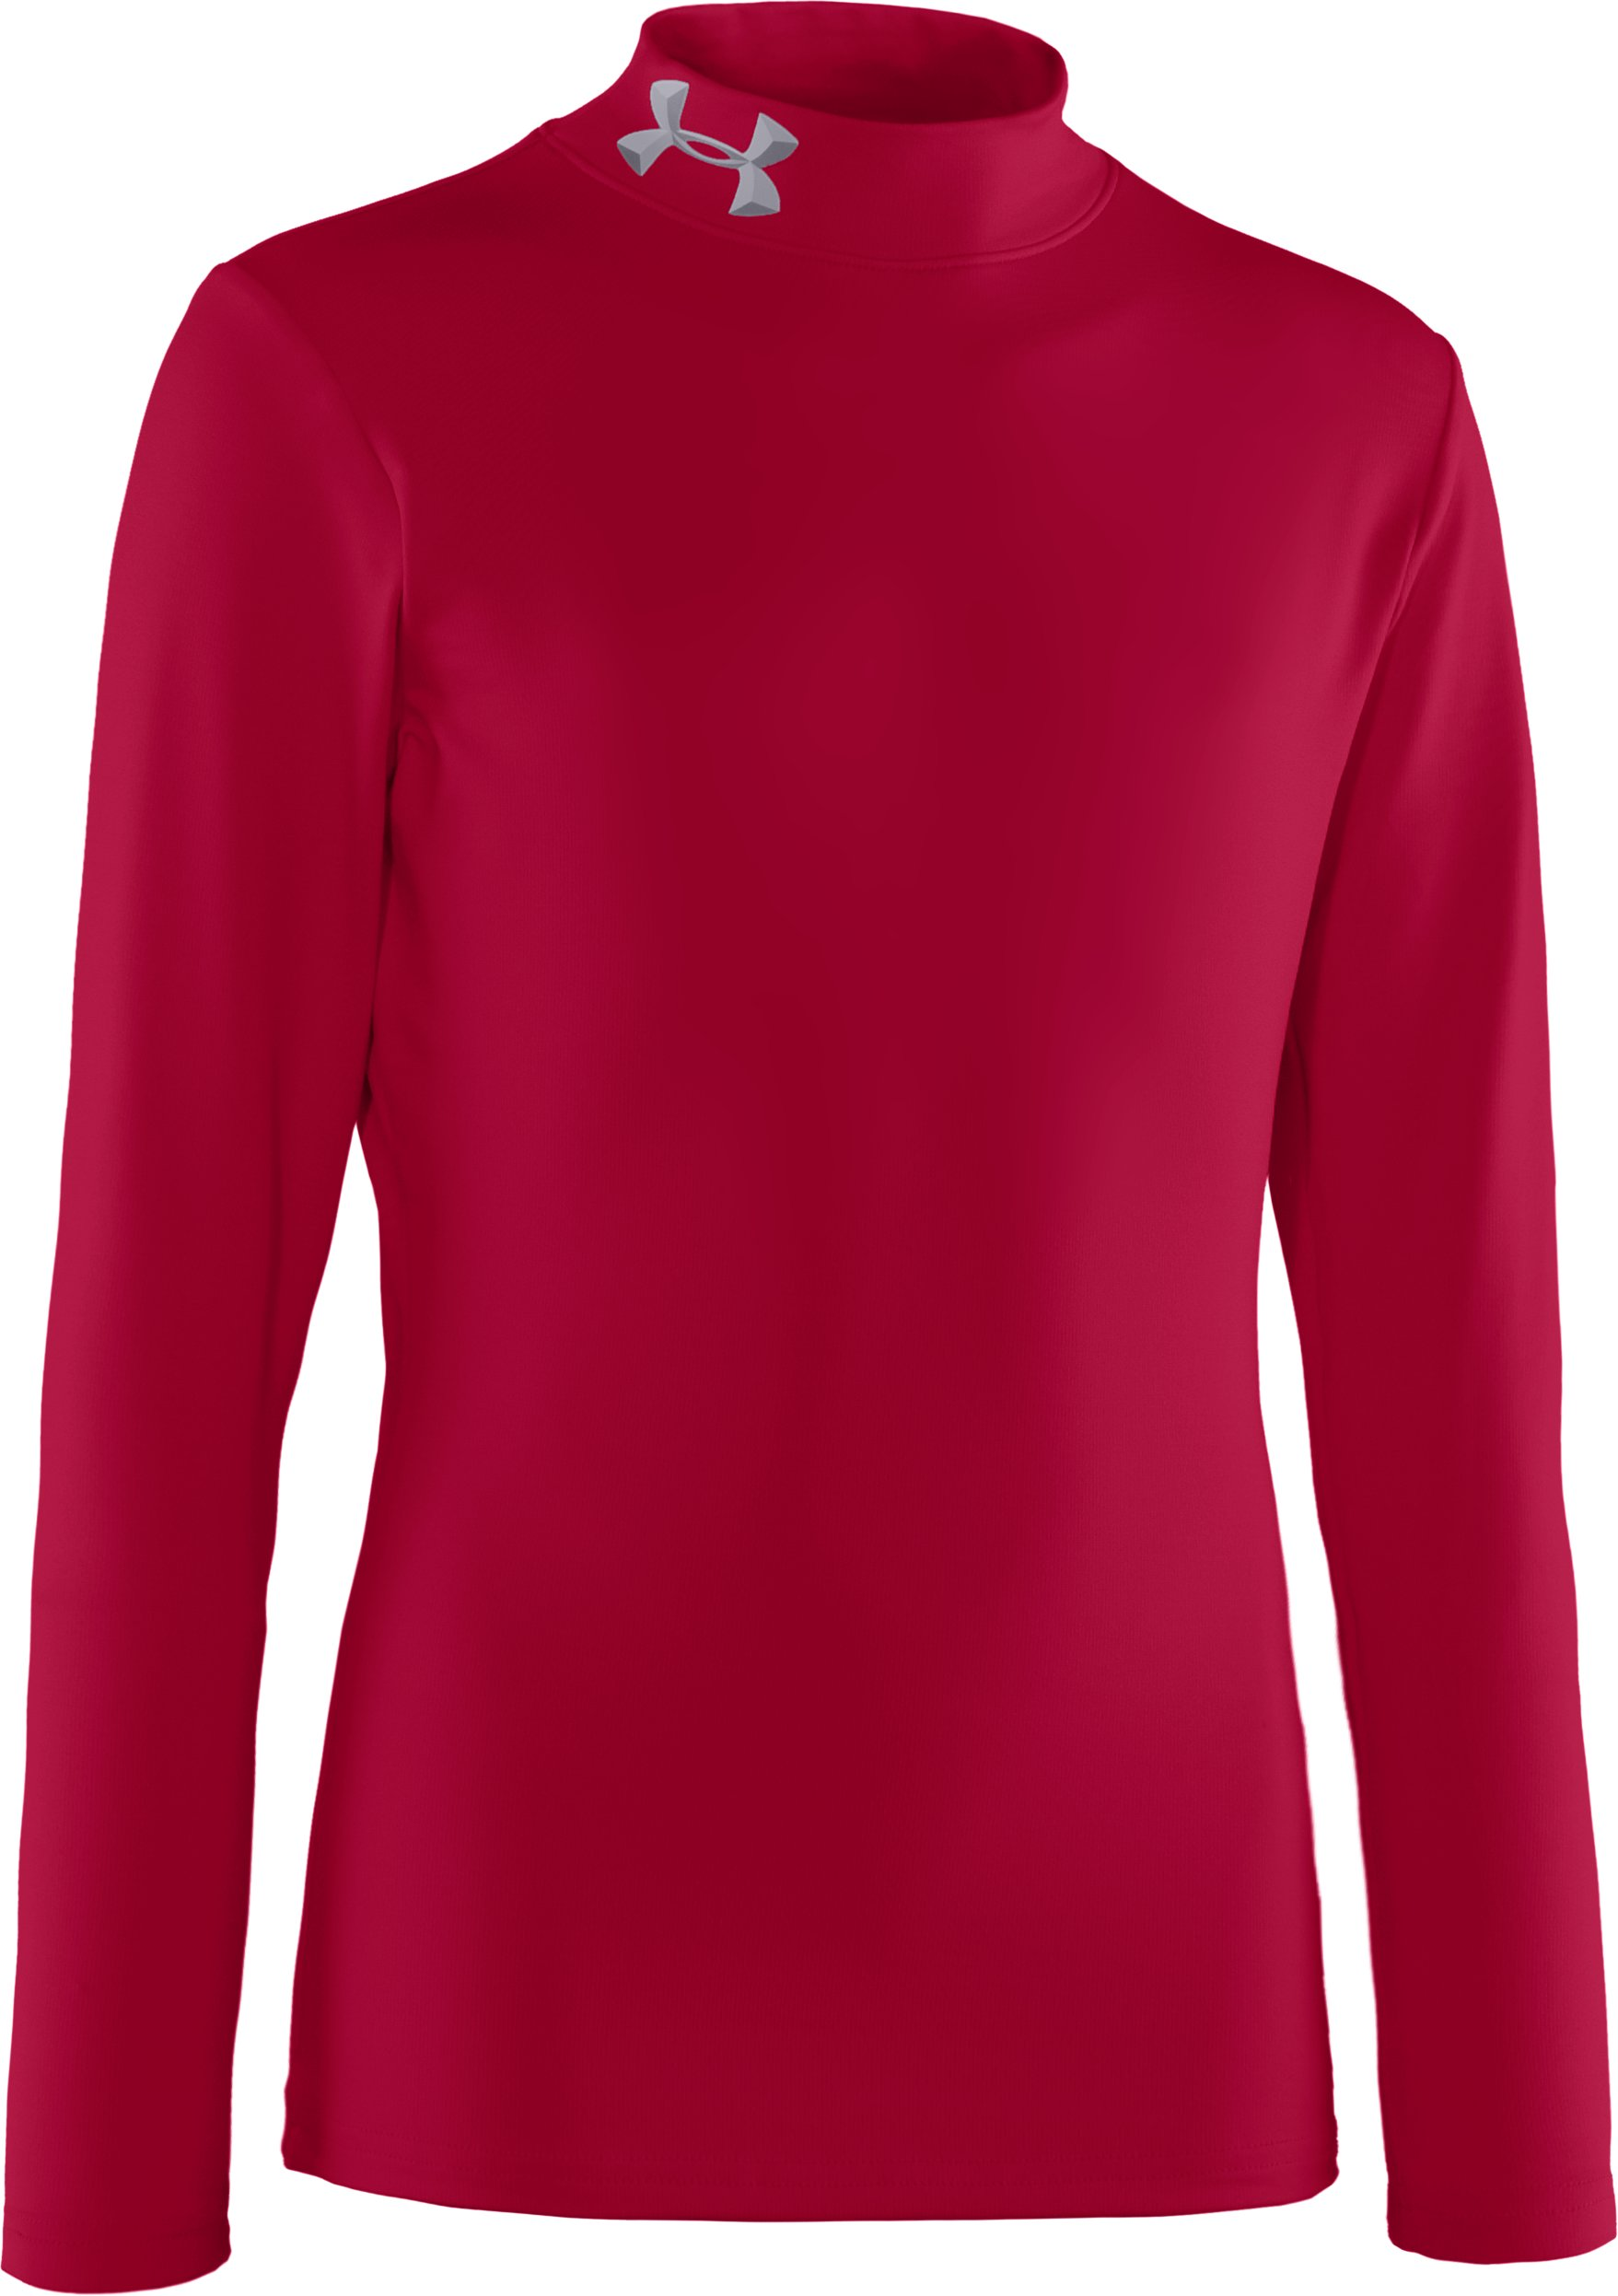 Boys' ColdGear® Evo Fitted Baselayer Mock, Maroon, zoomed image